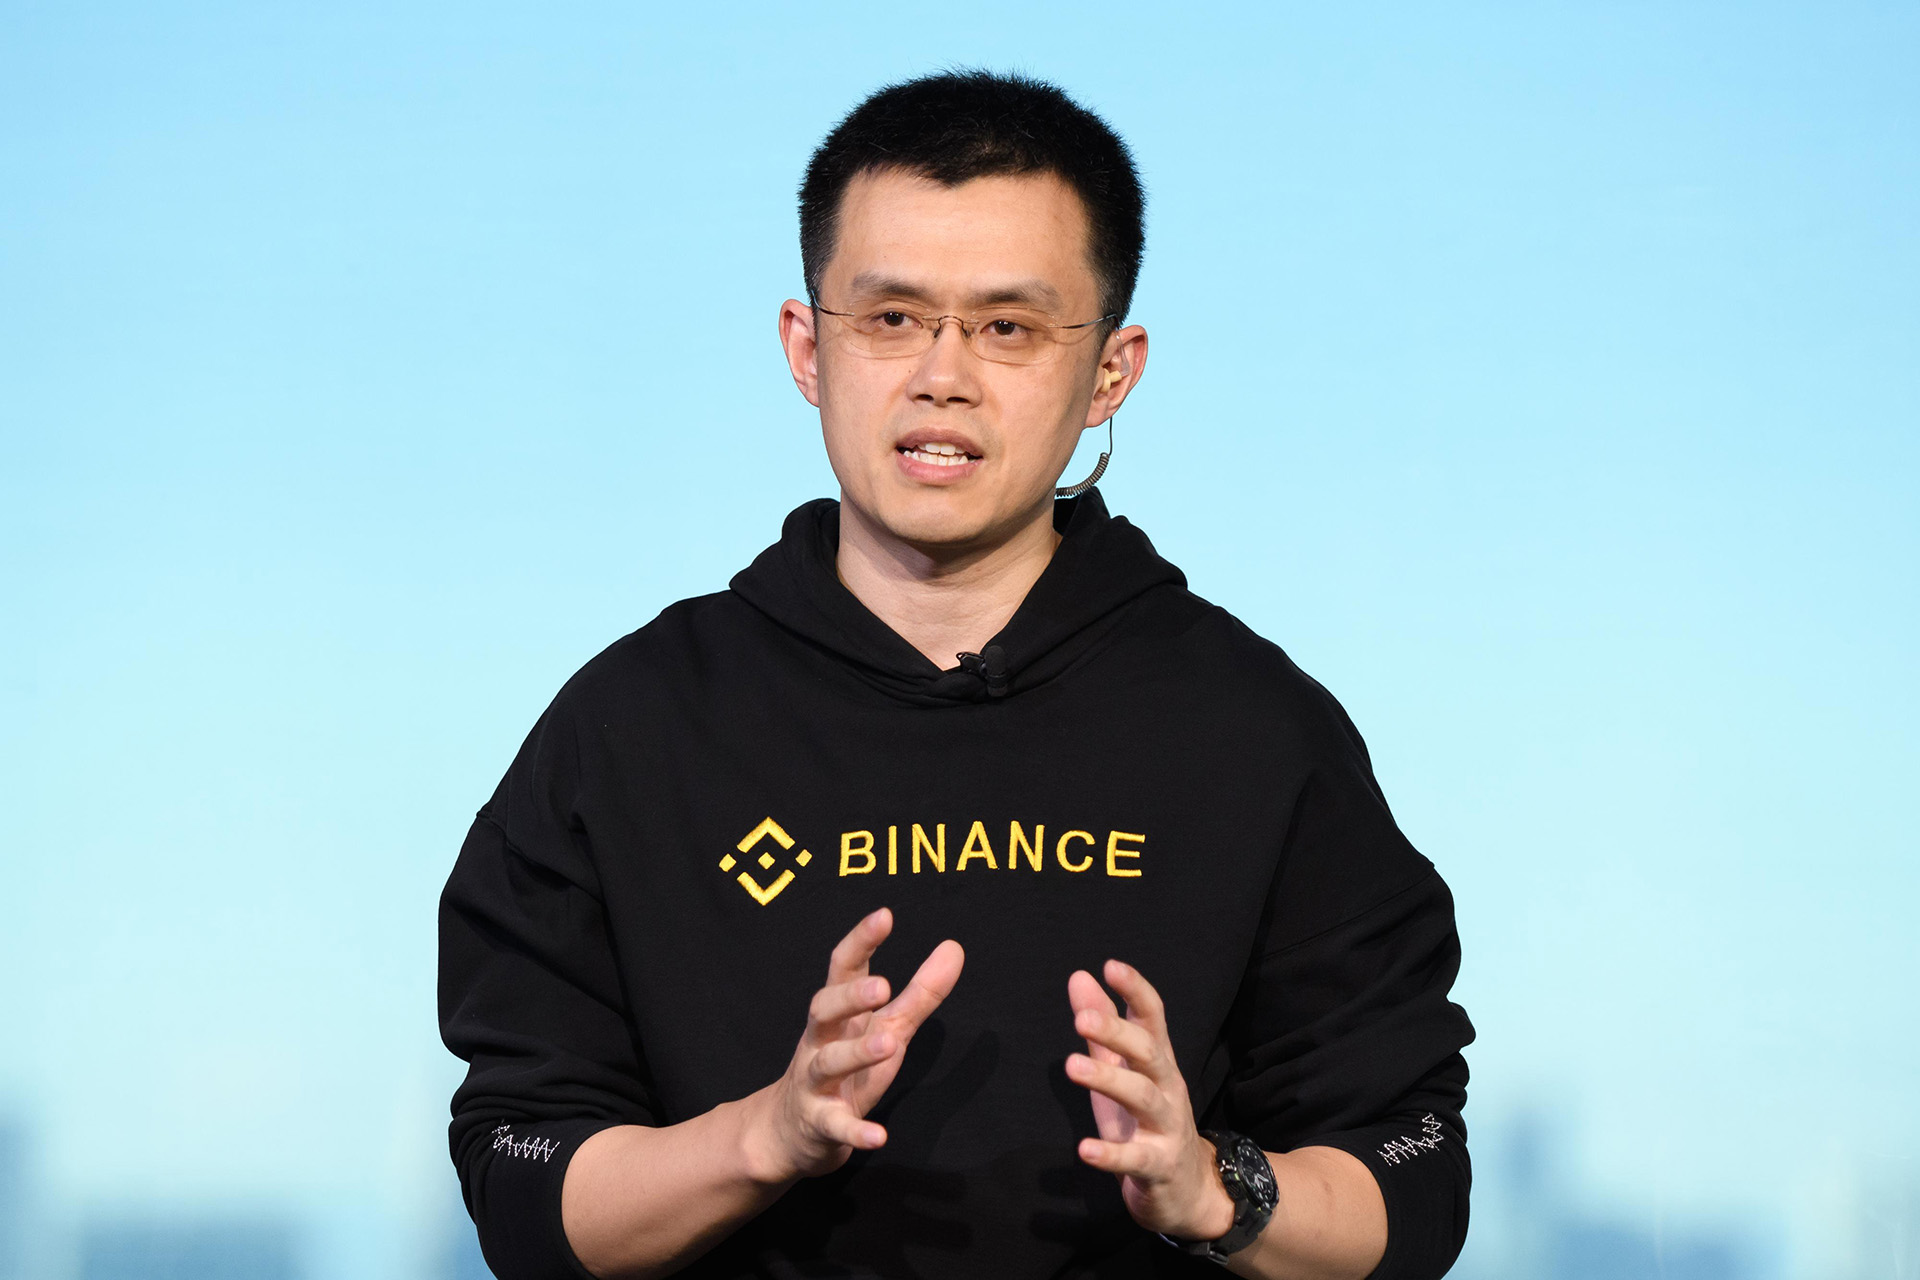 Mysterious 'Binance Cloud' Launching in 10 Days, CEO CZ Hints